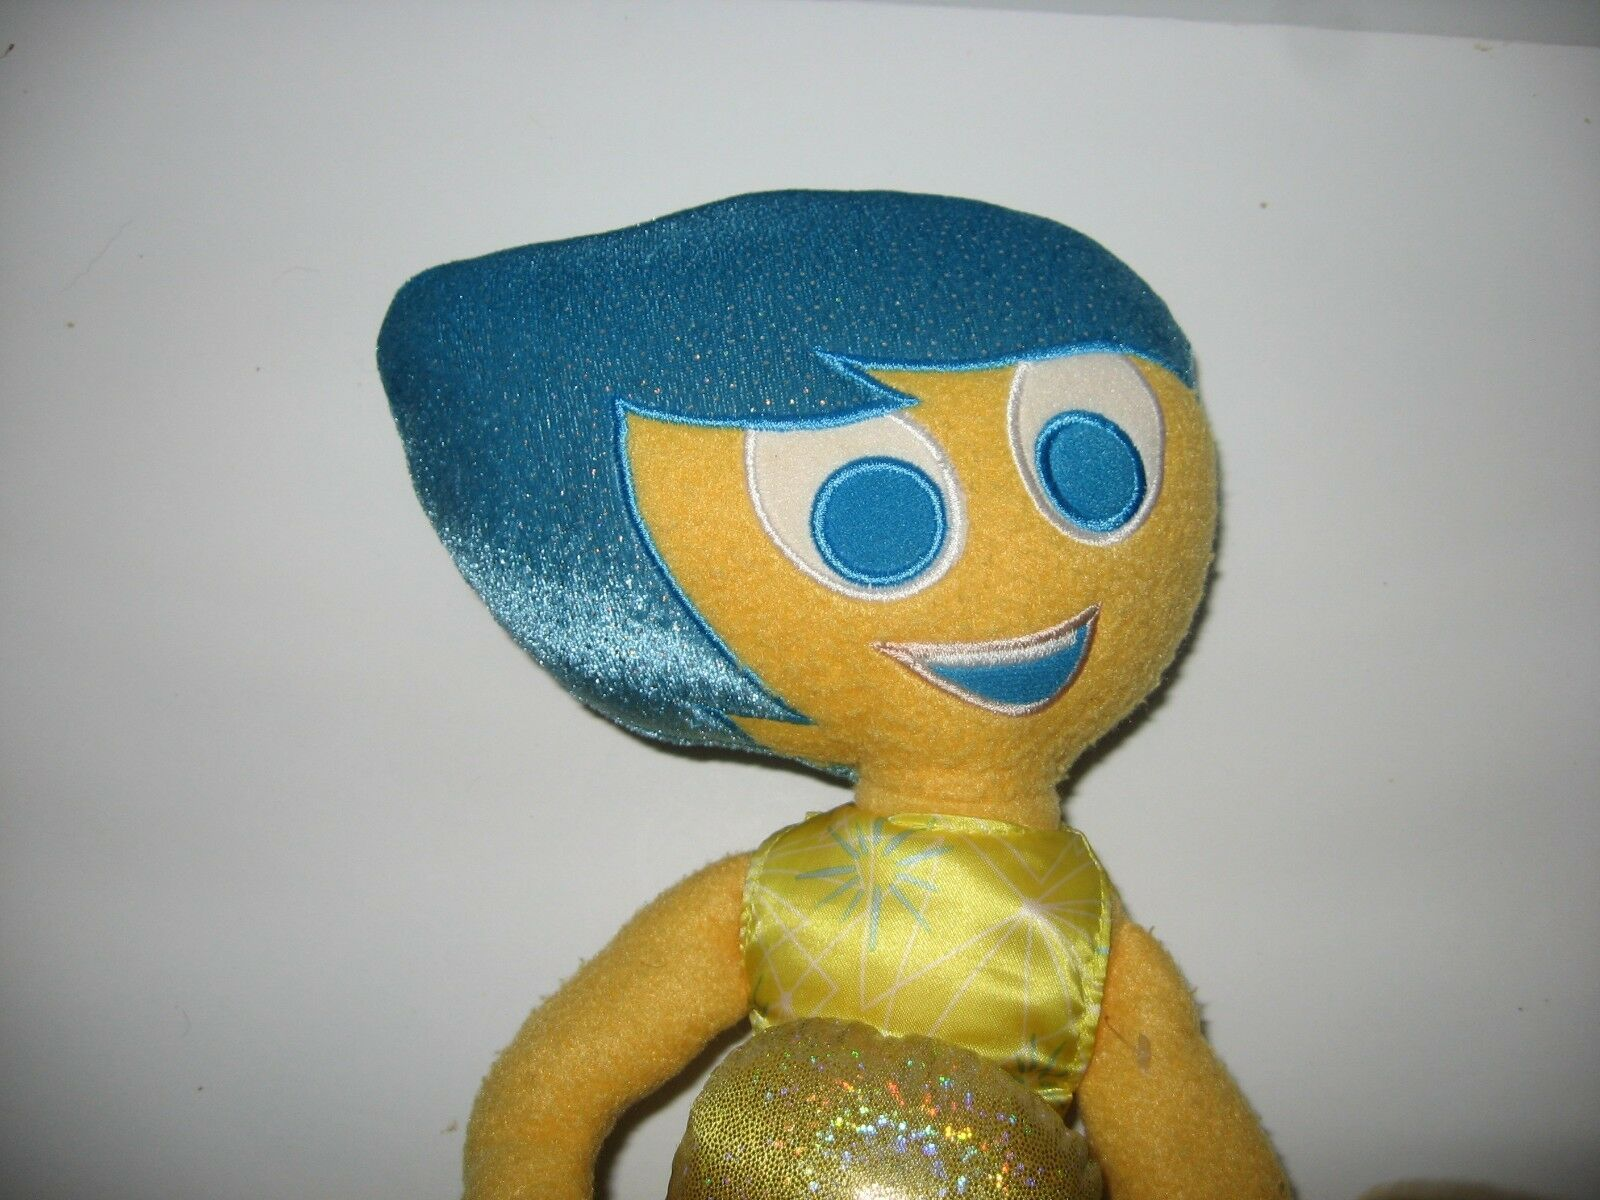 Disney Store Pixar Inside Out Joy Plush Doll Yellow Blue Hair Eyes Dress 15""